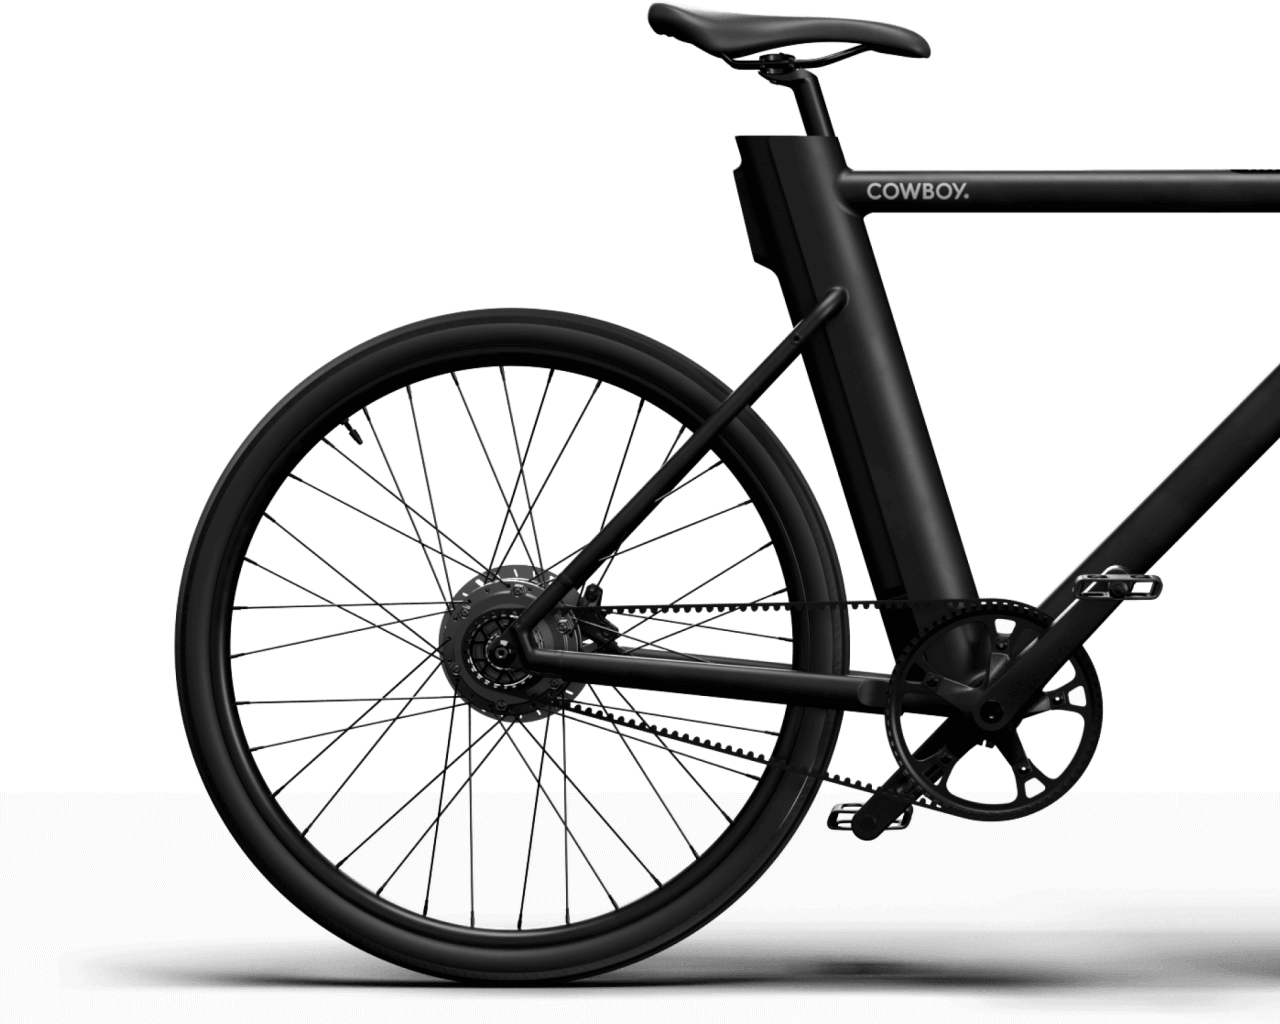 Cowboy E-Bike - Carbon-Riemengetriebe